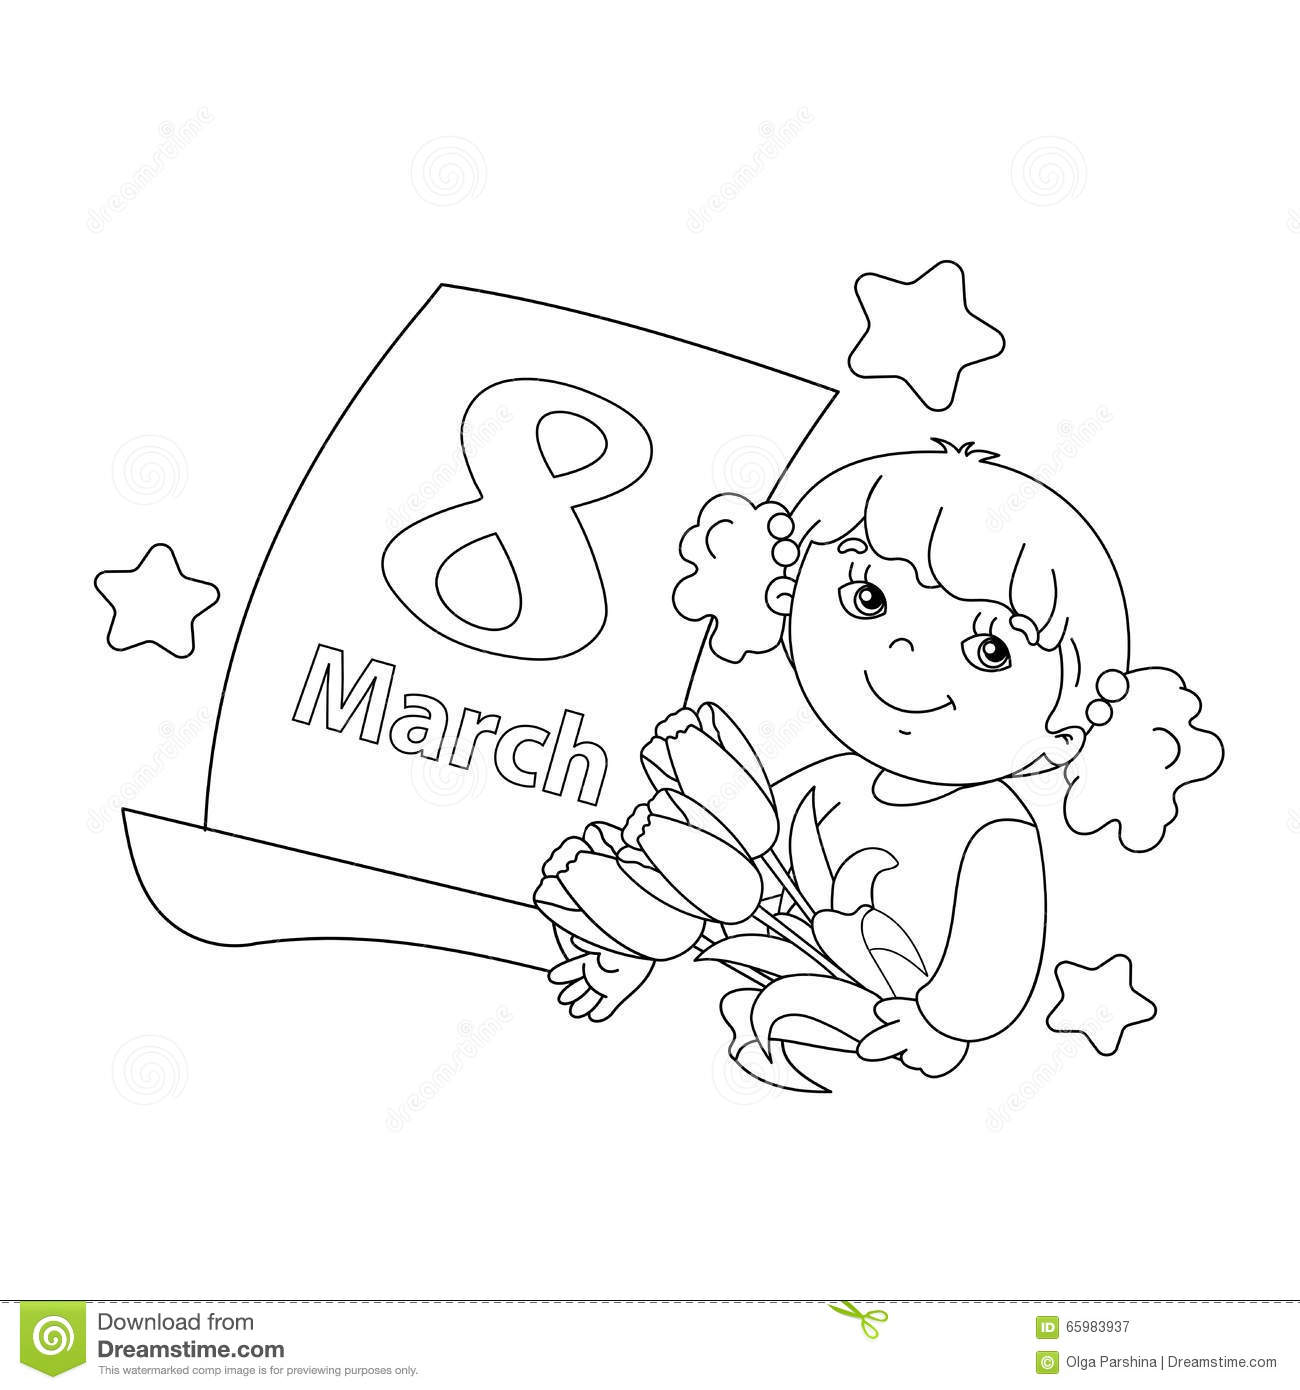 8 march coloring pages -  8 March Coloring Page A Download